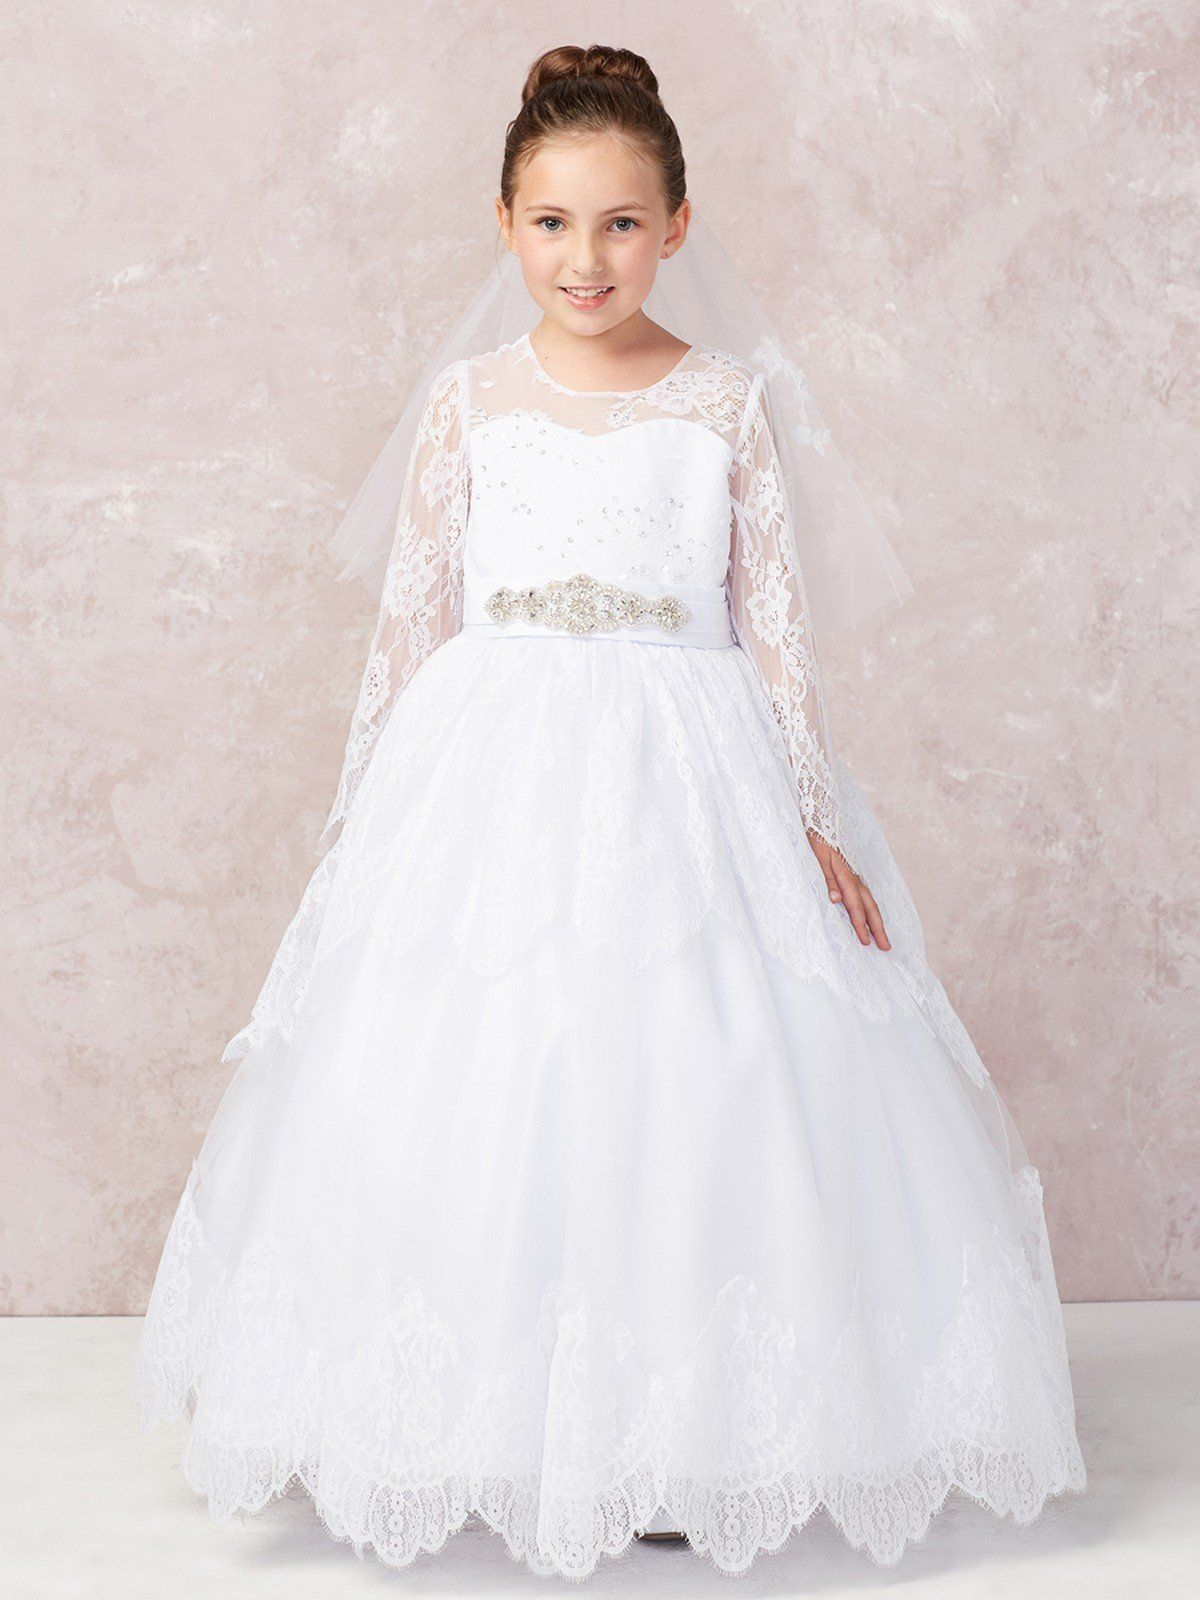 Long Sleeve Lace Applique Full Length Communion Dress 1180 In 2021 First Communion Dresses Girls First Communion Dresses Flower Girl Dress Lace [ 1600 x 1200 Pixel ]